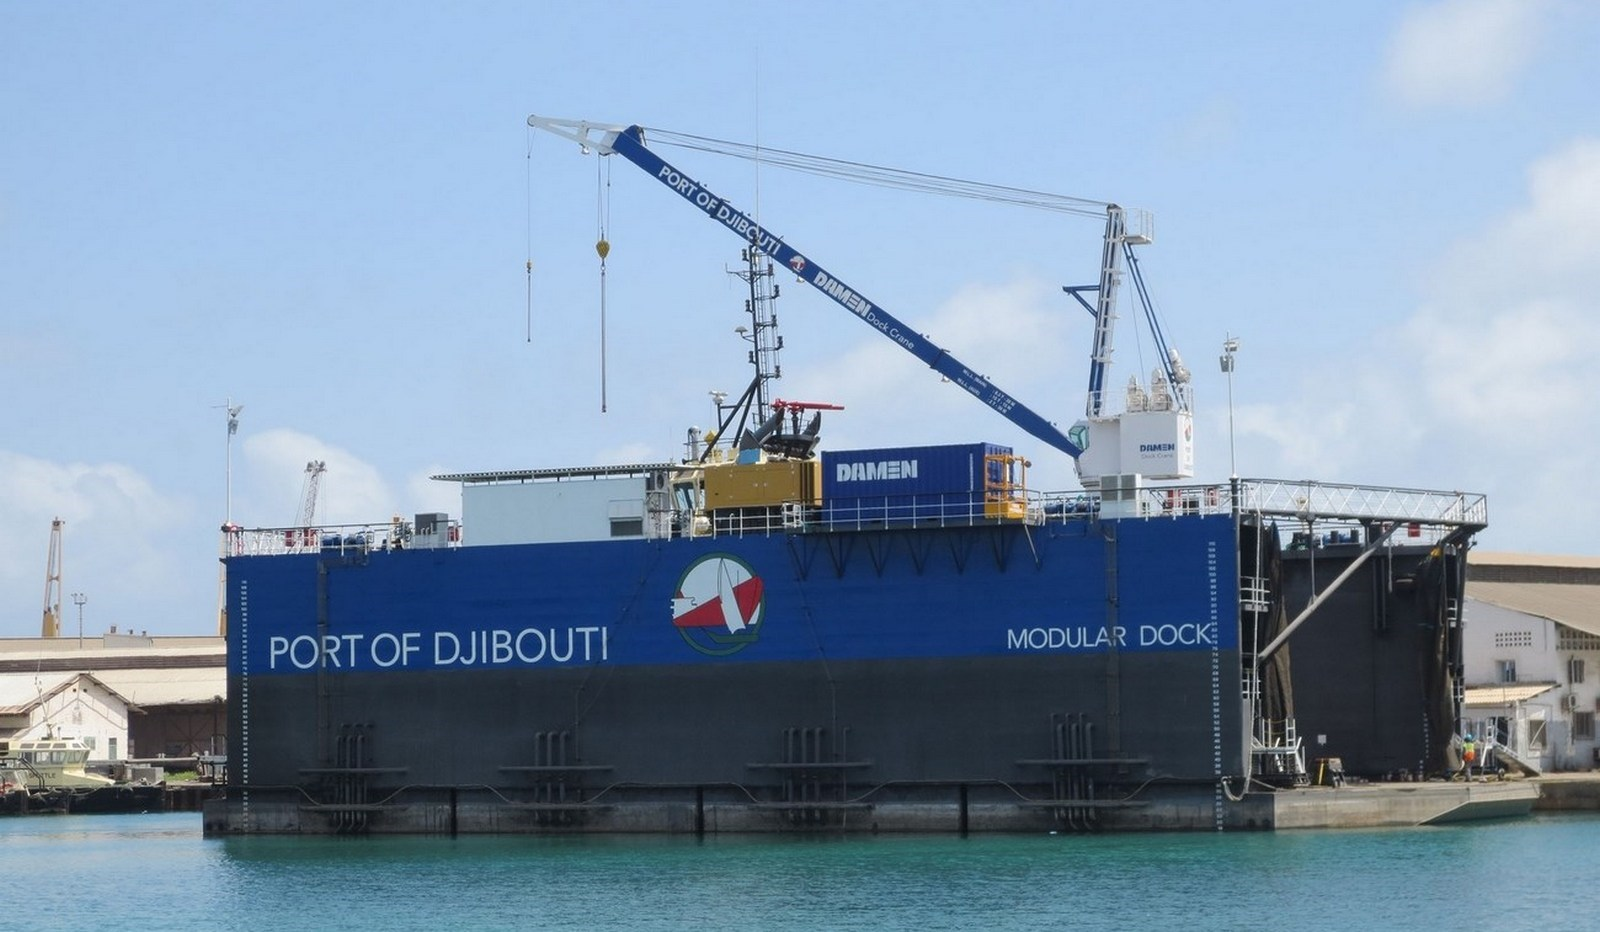 Modular Floating Drydock 5020 is for vessels up to 1 500 and up to